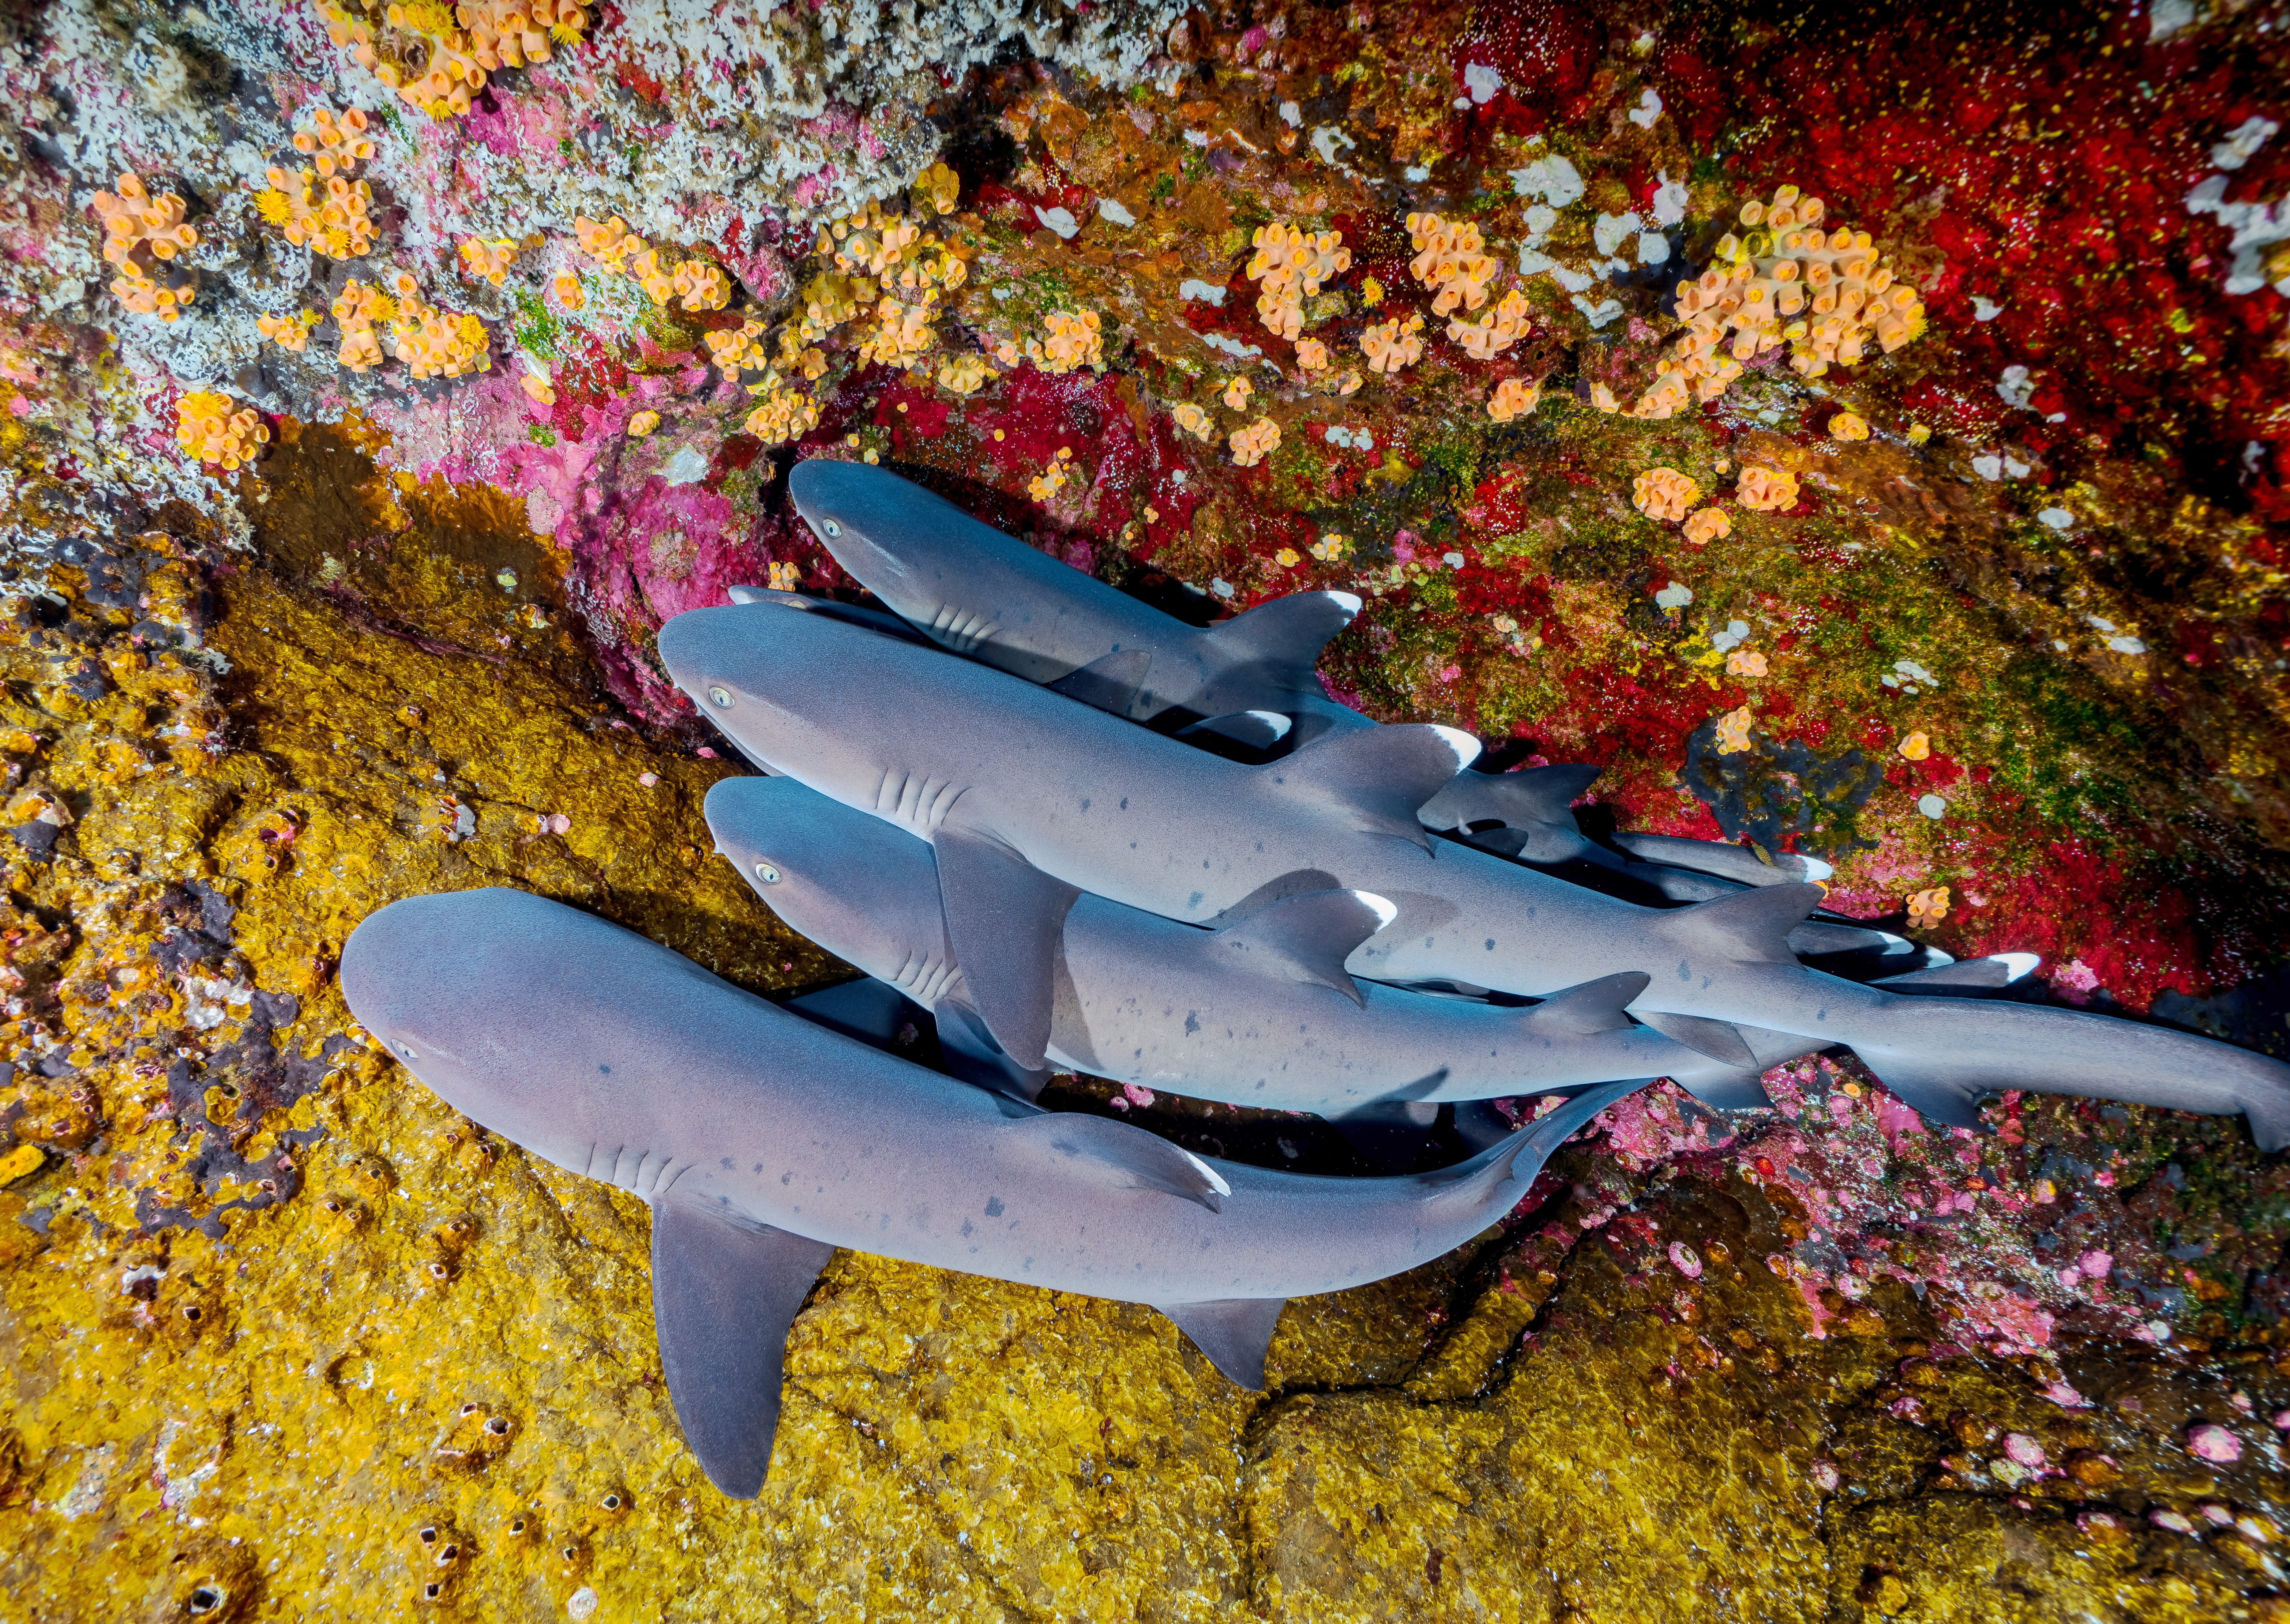 Sharks basking in Mexico